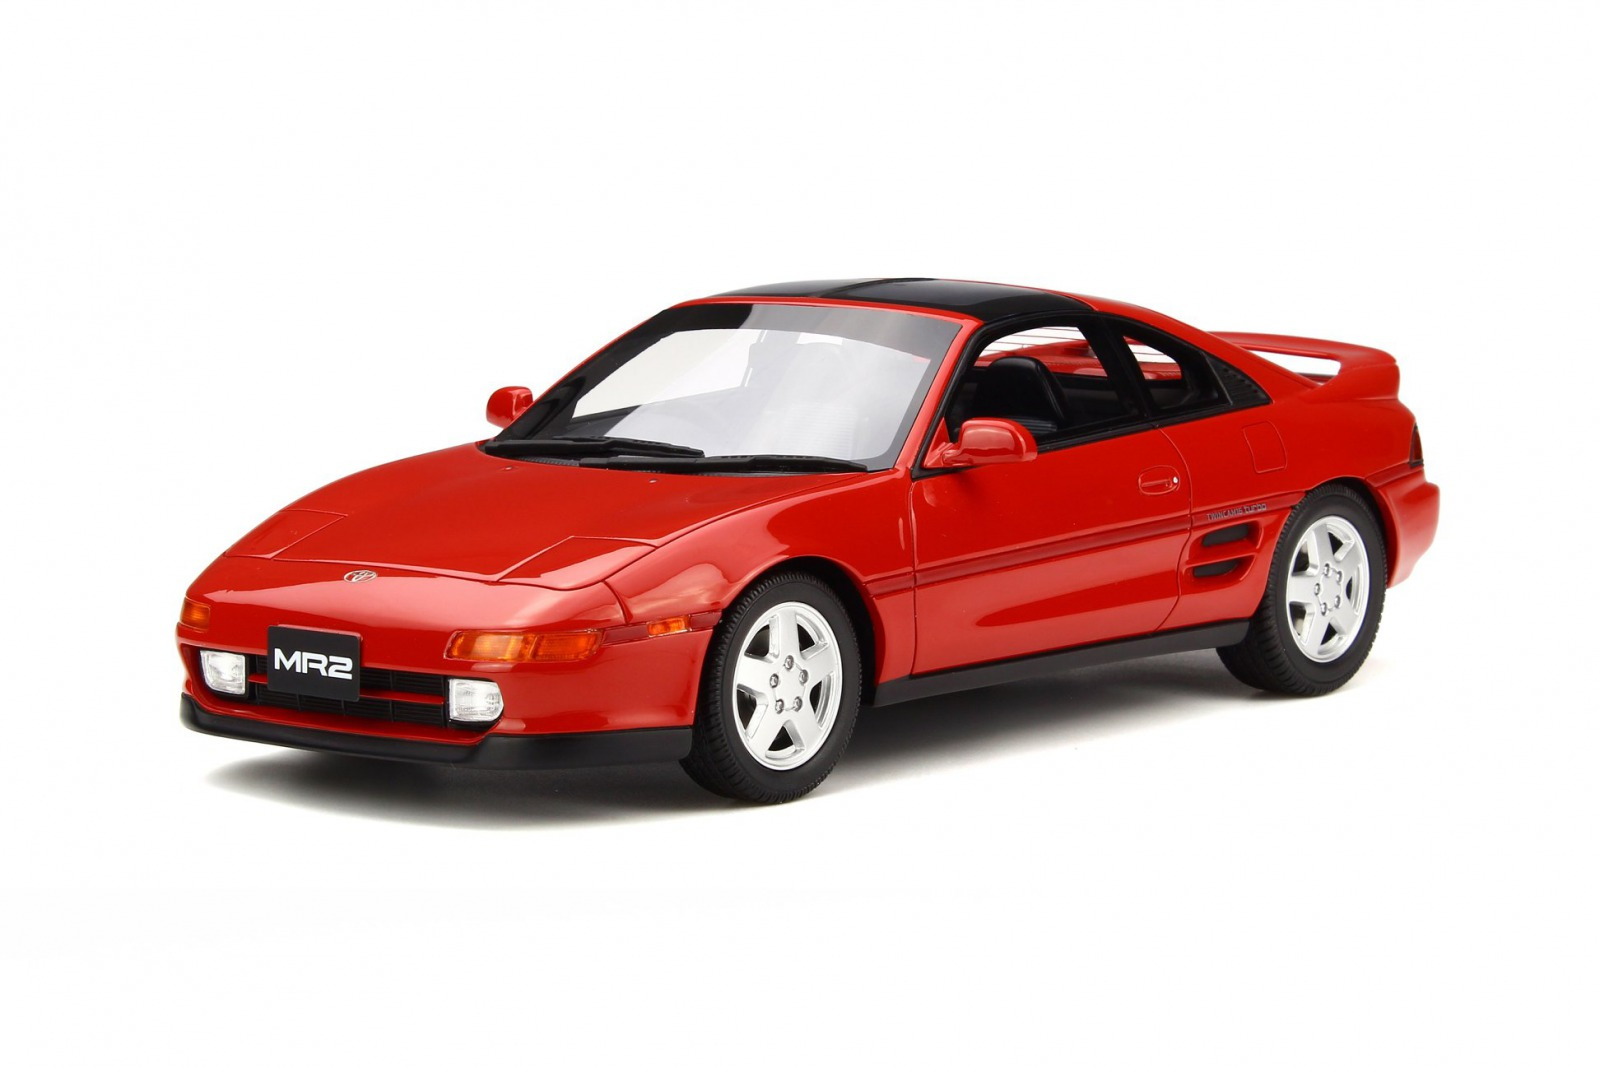 OttOmobile オットモビル 1:18 1992 Model Toyota Supra MR2 Supermarket Red 1992  Toyota MR2 1/18 Super Red II 3E5 By OttOmoble NEW